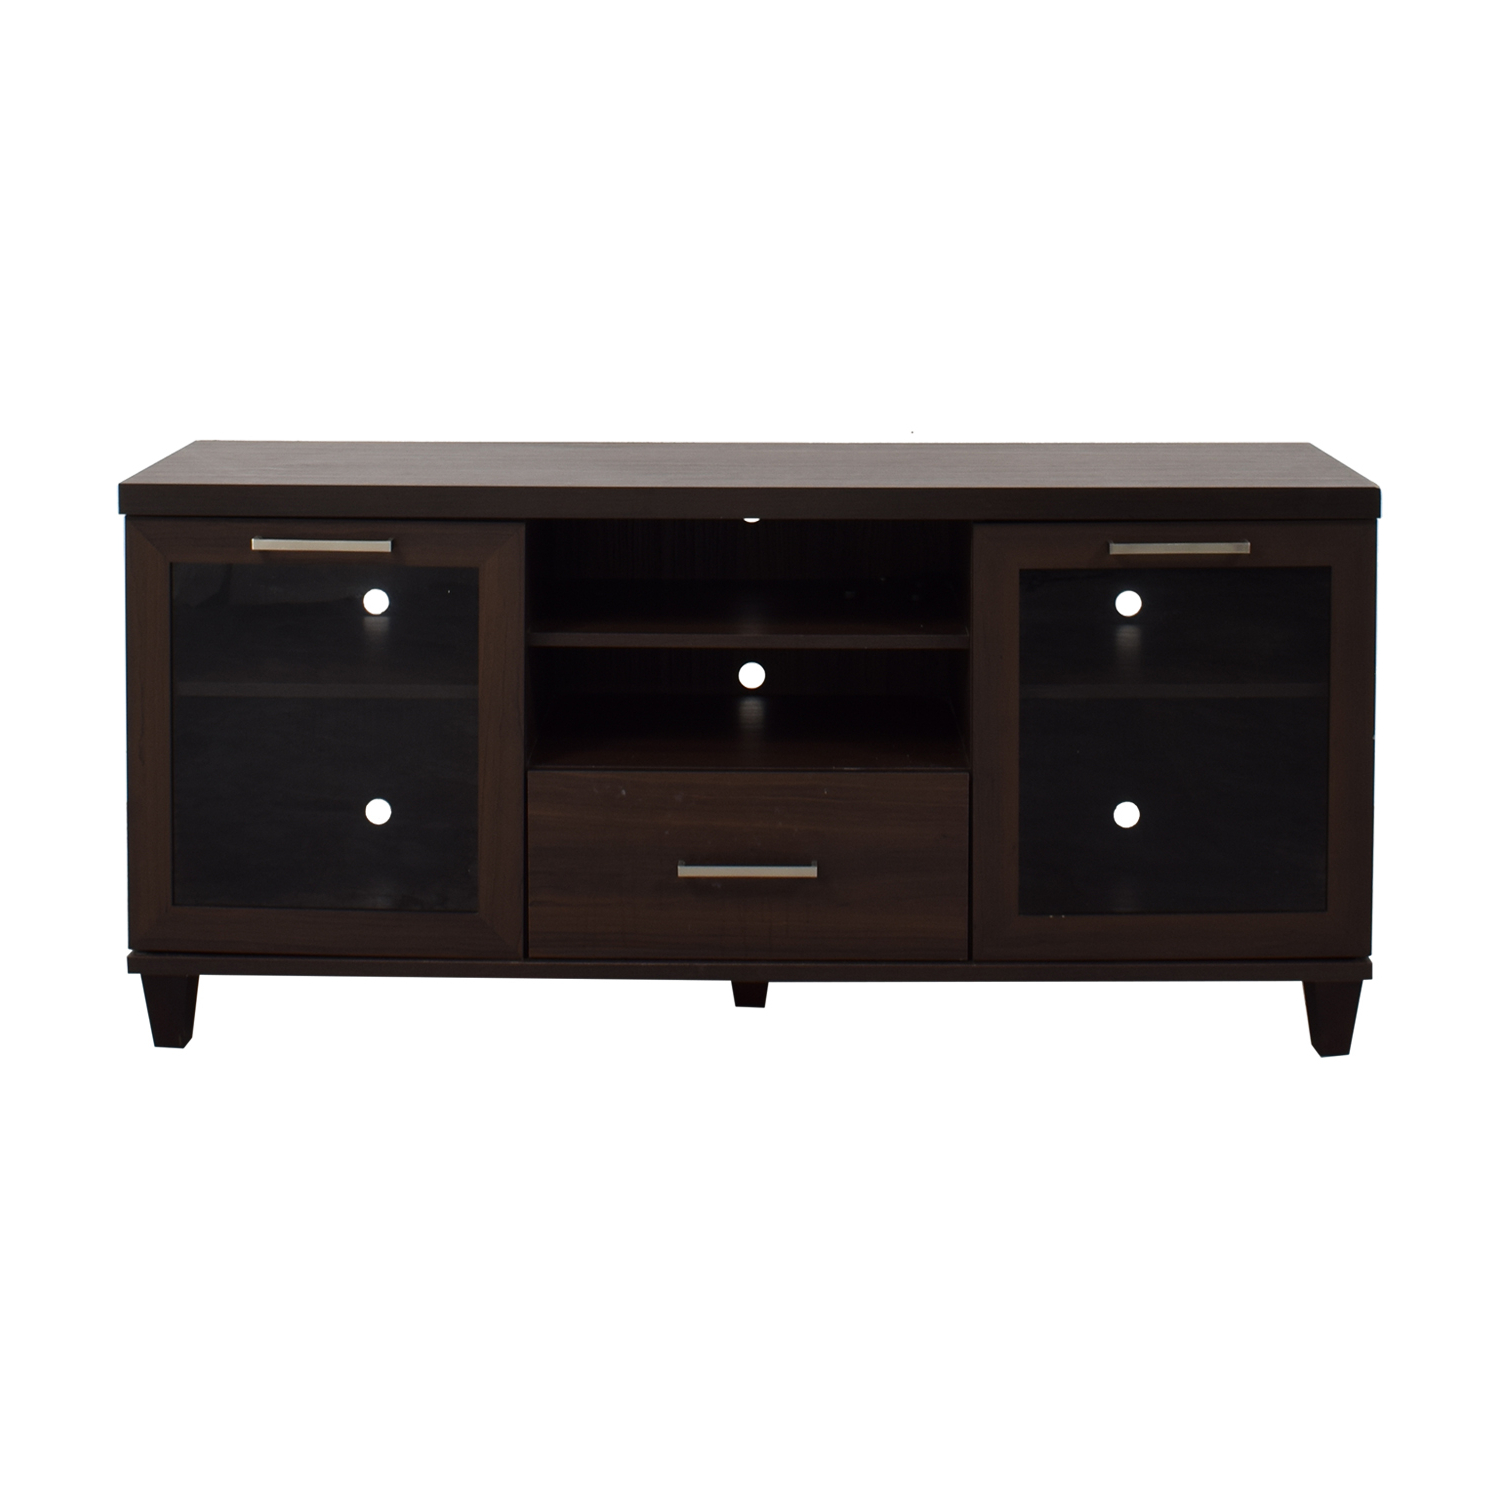 Single Drawer Wood Tv Stand With Side Cabinets In 2018 Single Tv Stands (View 11 of 20)